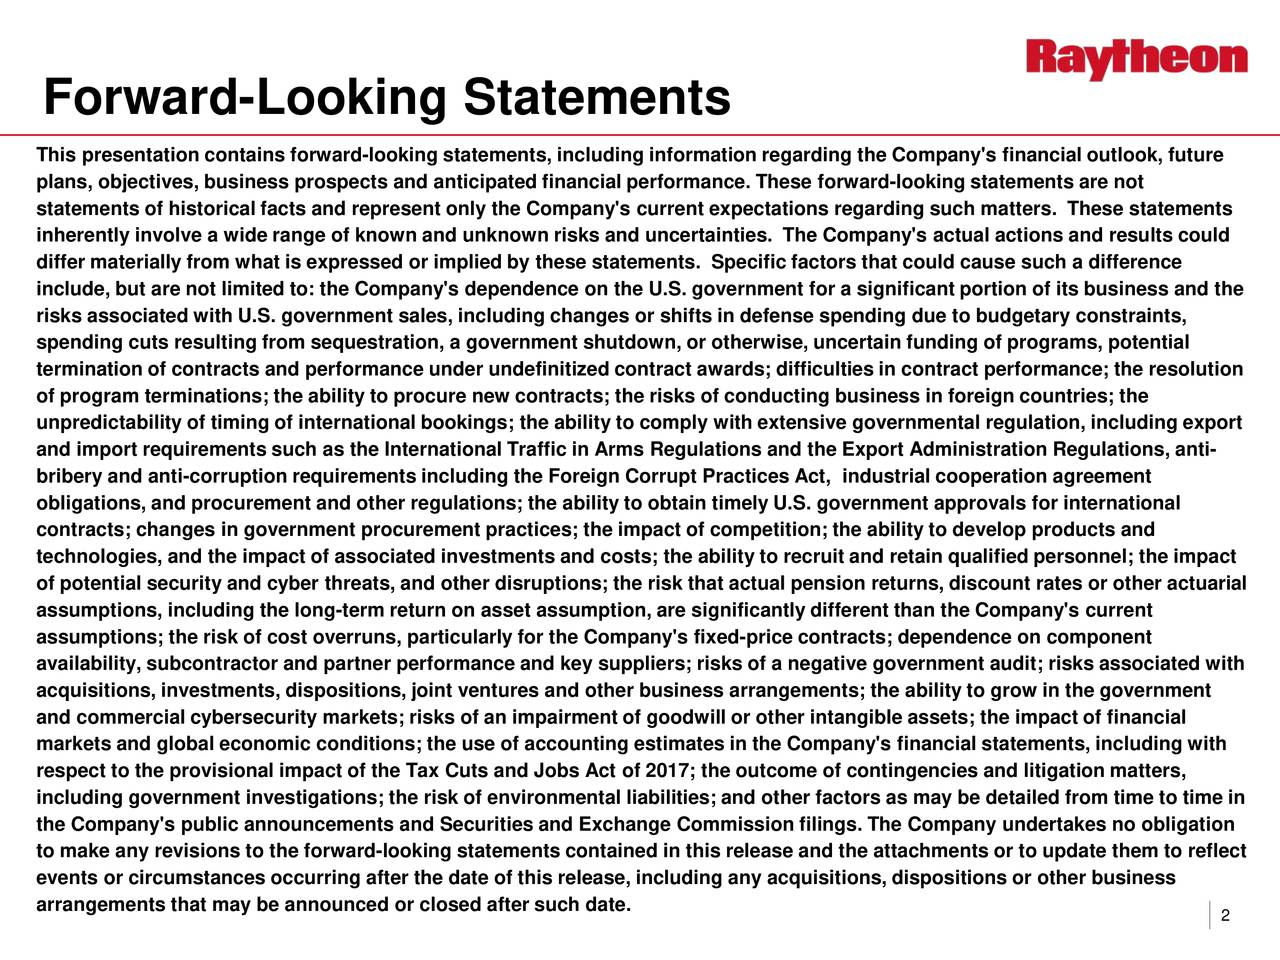 This presentation contains forward-looking statements, including information regarding the Company's financial outlook, future plans, objectives, business prospects and anticipated financial performance. These forwardl-ooking statements are not statements of historical facts and represent only the Company's current expectations regarding such matters. These statemens t inherently involve a wide range of known and unknown risks and uncertainties. The Company's actual actions and results could differ materially from what is expressed or implied by these statements. Specific factors that could cause such a difference include, but are not limited to: the Company's dependence on the U.S.government for a significant portion of its business and the risks associated with U.S.government sales, including changes or shifts in defense spending due to budgetary constraints, spending cuts resulting from sequestration, a government shutdown, or otherwise, uncertain funding ofprograms, potential termination of contracts and performance under undefinitized contract awards; difficulties in contract performance; the resolution of program terminations; the ability to procure new contracts; the risks of conducting business in foreign countries; the unpredictability of timing of international bookings; the ability to comply with extensive governmental regulation,including export and import requirements such as theInternational Traffic in Arms Regulations and the Export Administration Regulations, ant- i bribery and anti-corruption requirements including the Foreign Corrupt Practices Act, industrial cooperation agreement obligations, and procurement and other regulations; the ability to obtain timely U.S. government approvals for international contracts; changes in government procurement practices; the impact of competition; the ability to develop products and technologies, and the impact of associated investments and costs;the ability to recruit and retain qualified personnel; the impact